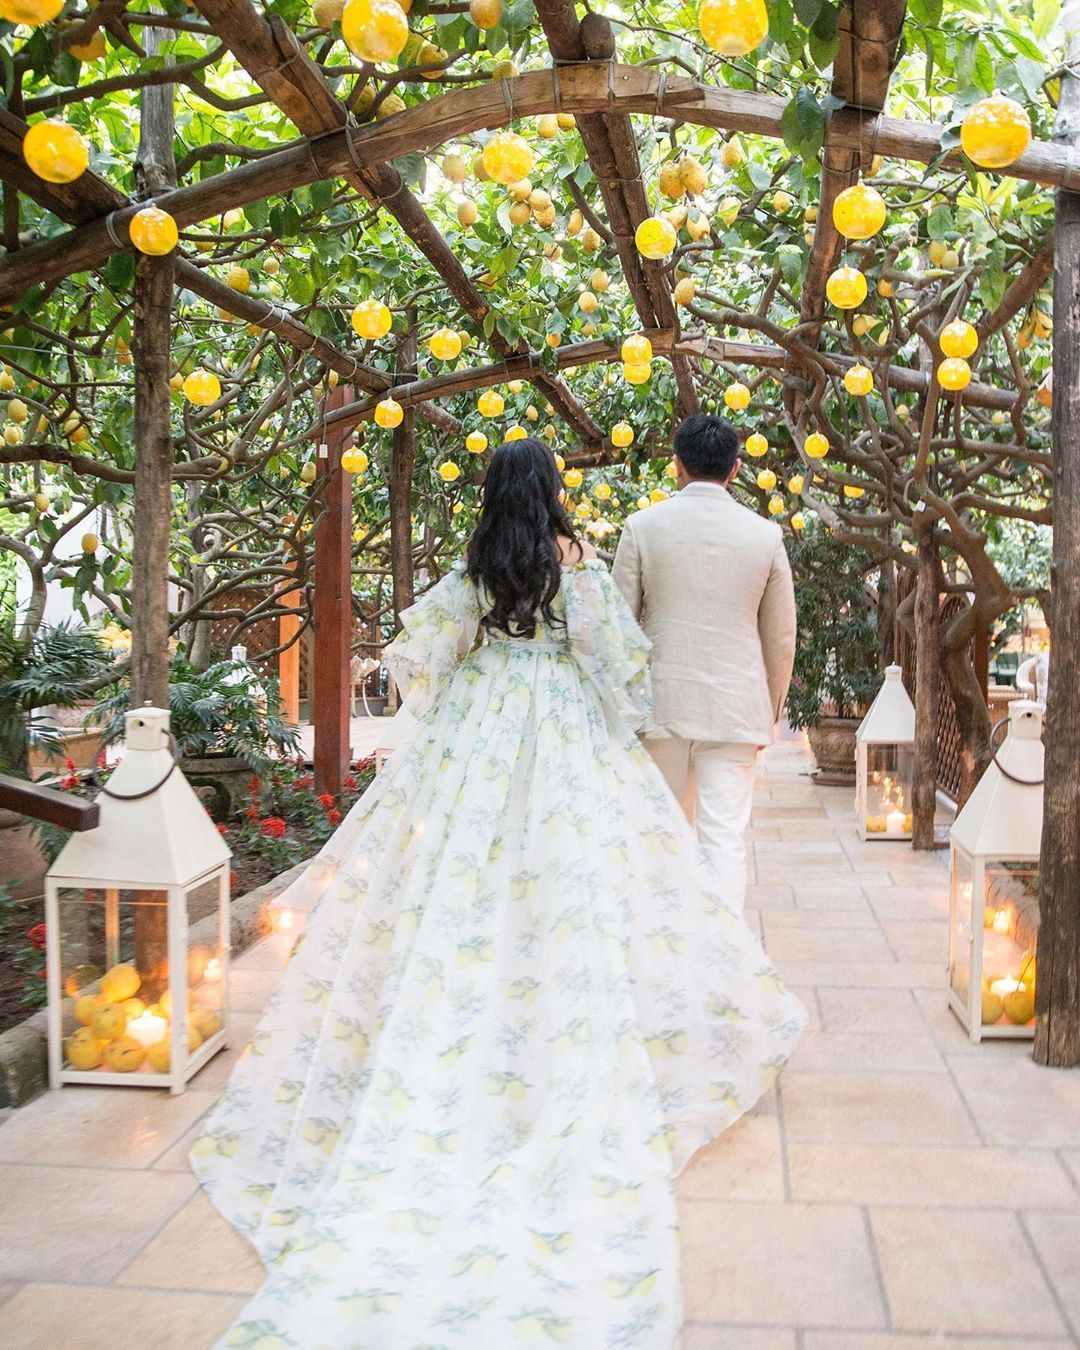 Vogue Weddings On Instagram It Was All In The Citrus Y Details For This Bride And Groom Seen Heading To Their Italian Wedding Dresses Wedding Vogue Wedding